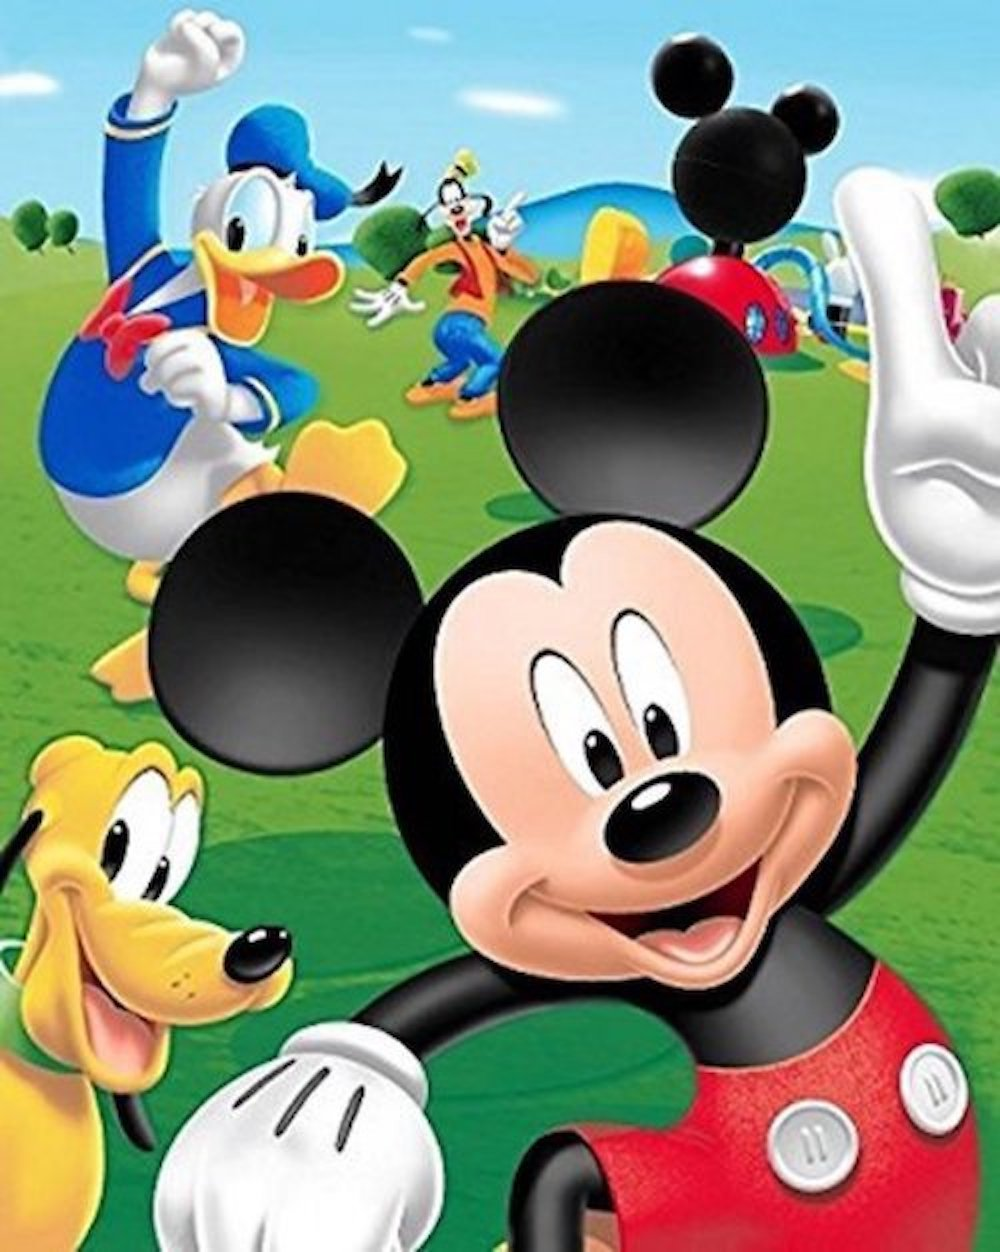 Disney Mickey Mouse, Donald Duck, Goofy, and Pluto Club House Super Soft Plush Oversized Twin Size Blanket